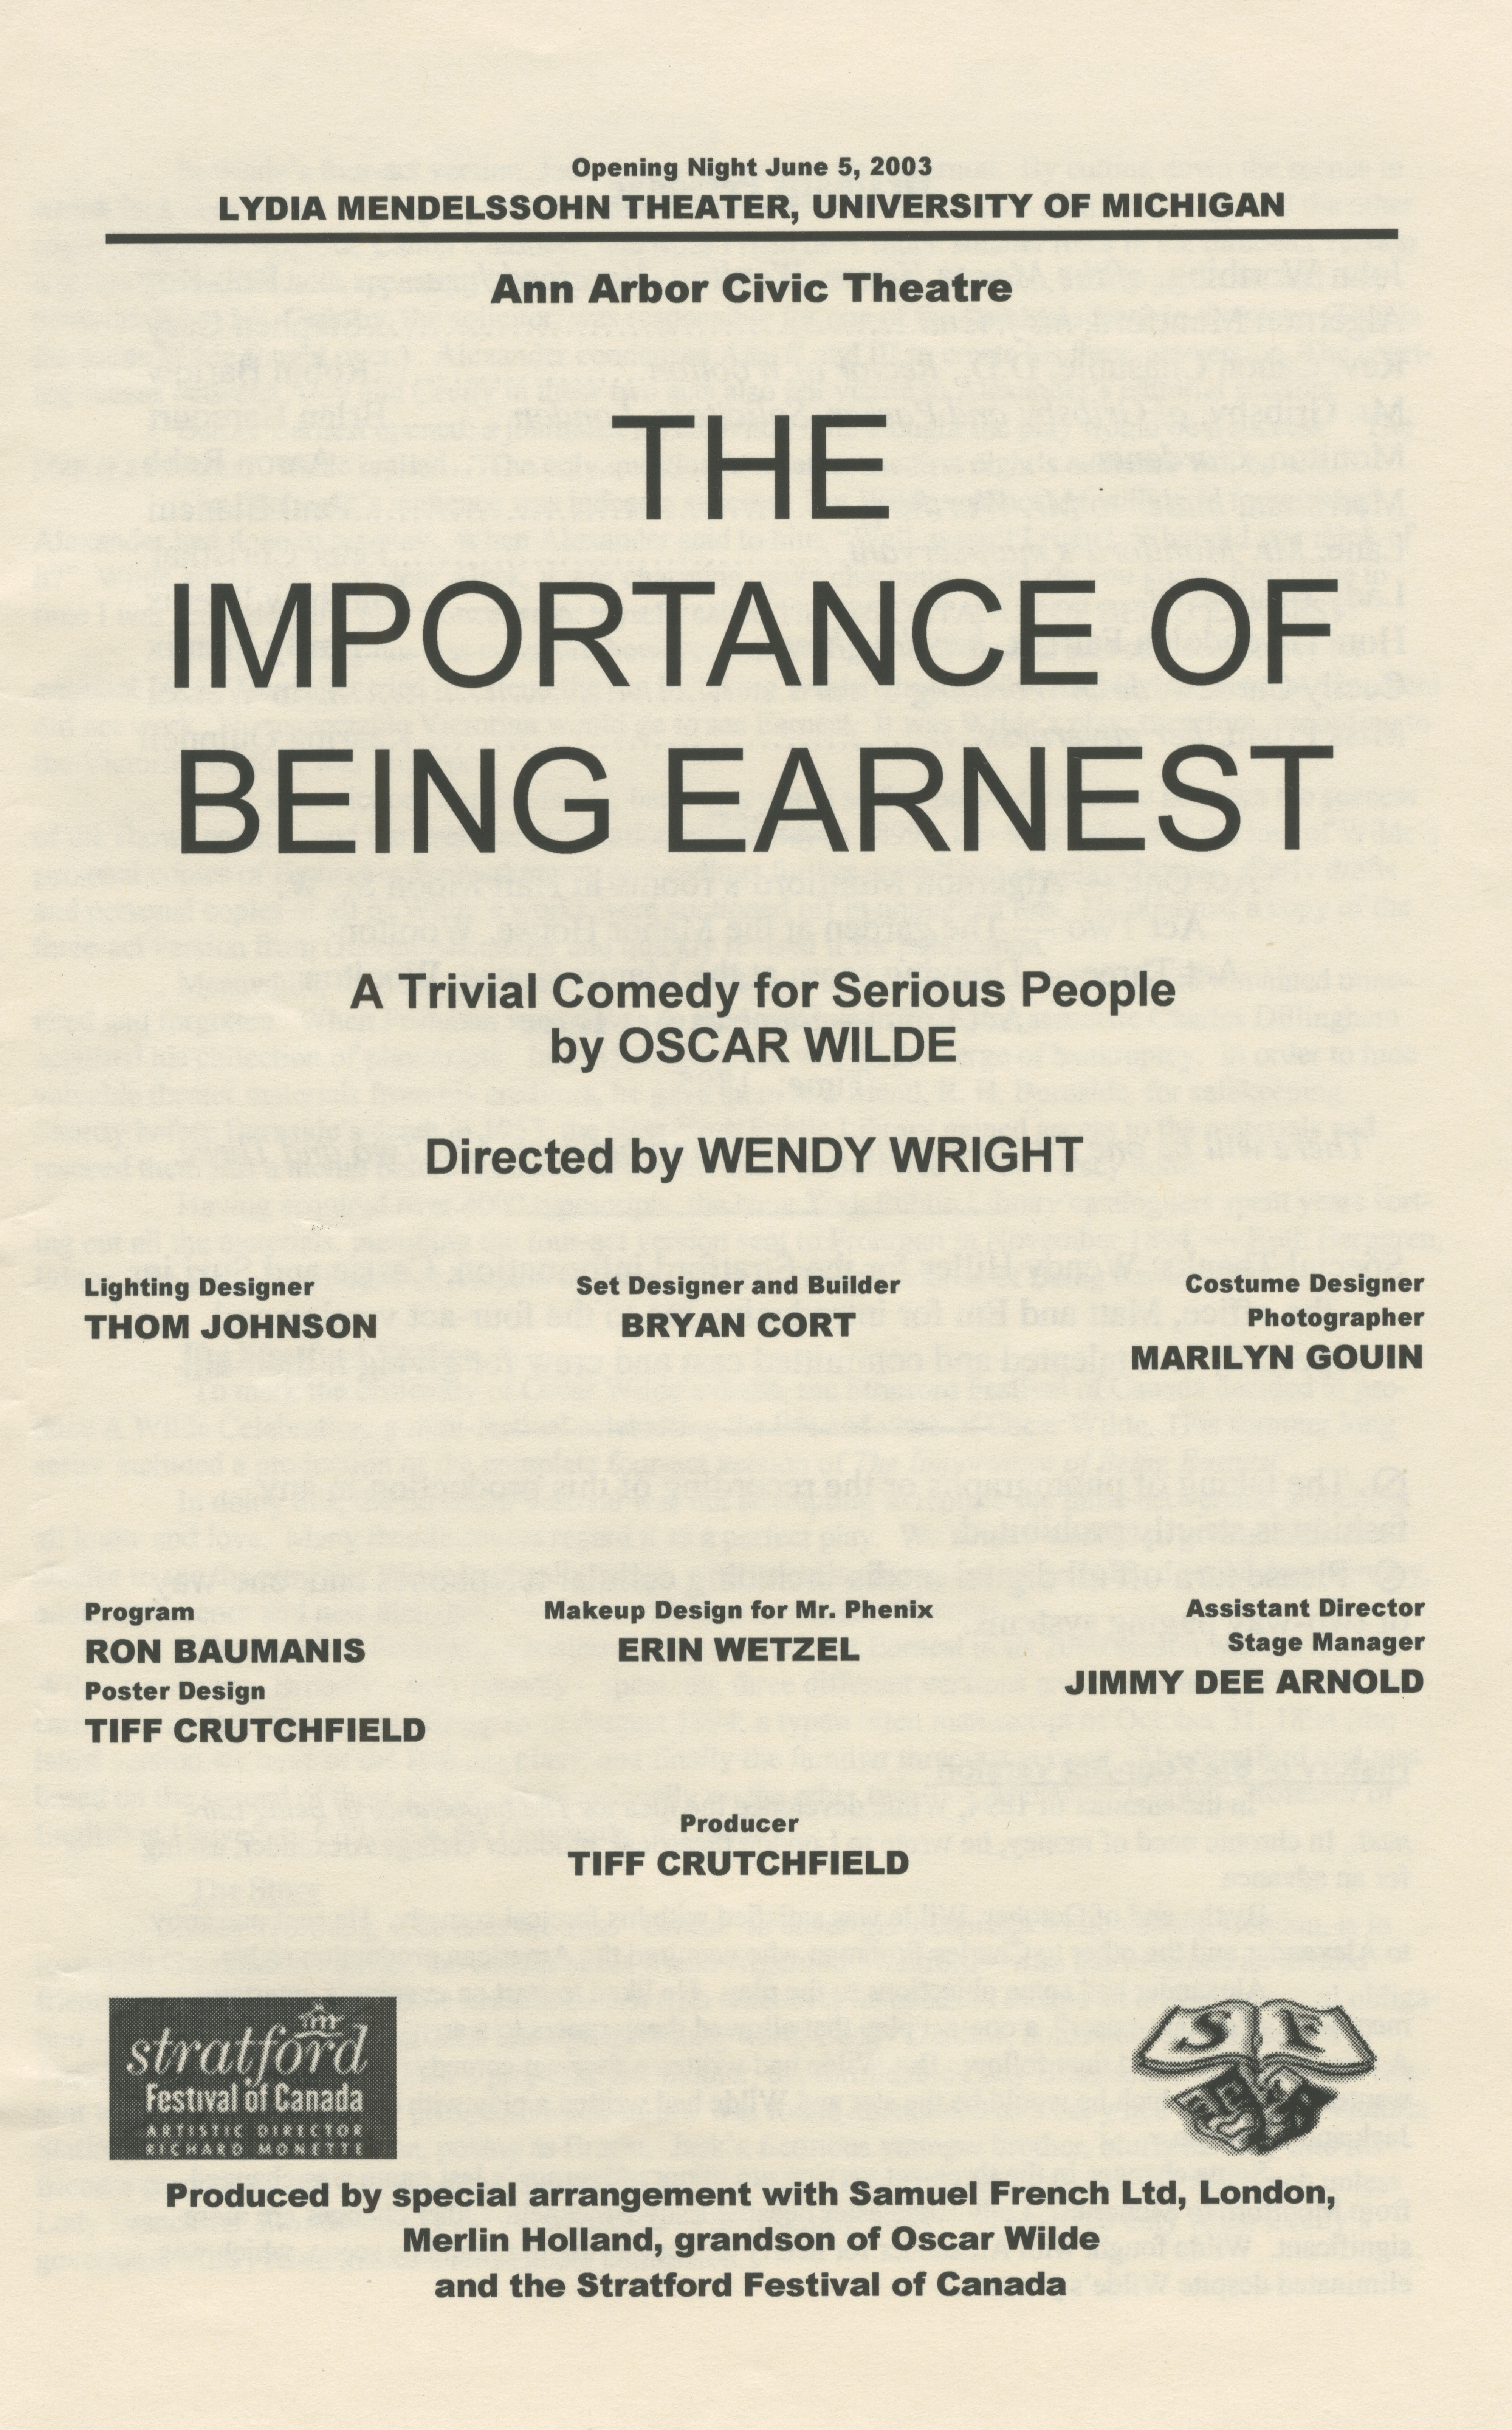 Ann Arbor Civic Theatre Program: The Importance Of Being Earnest, June 05, 2003 image